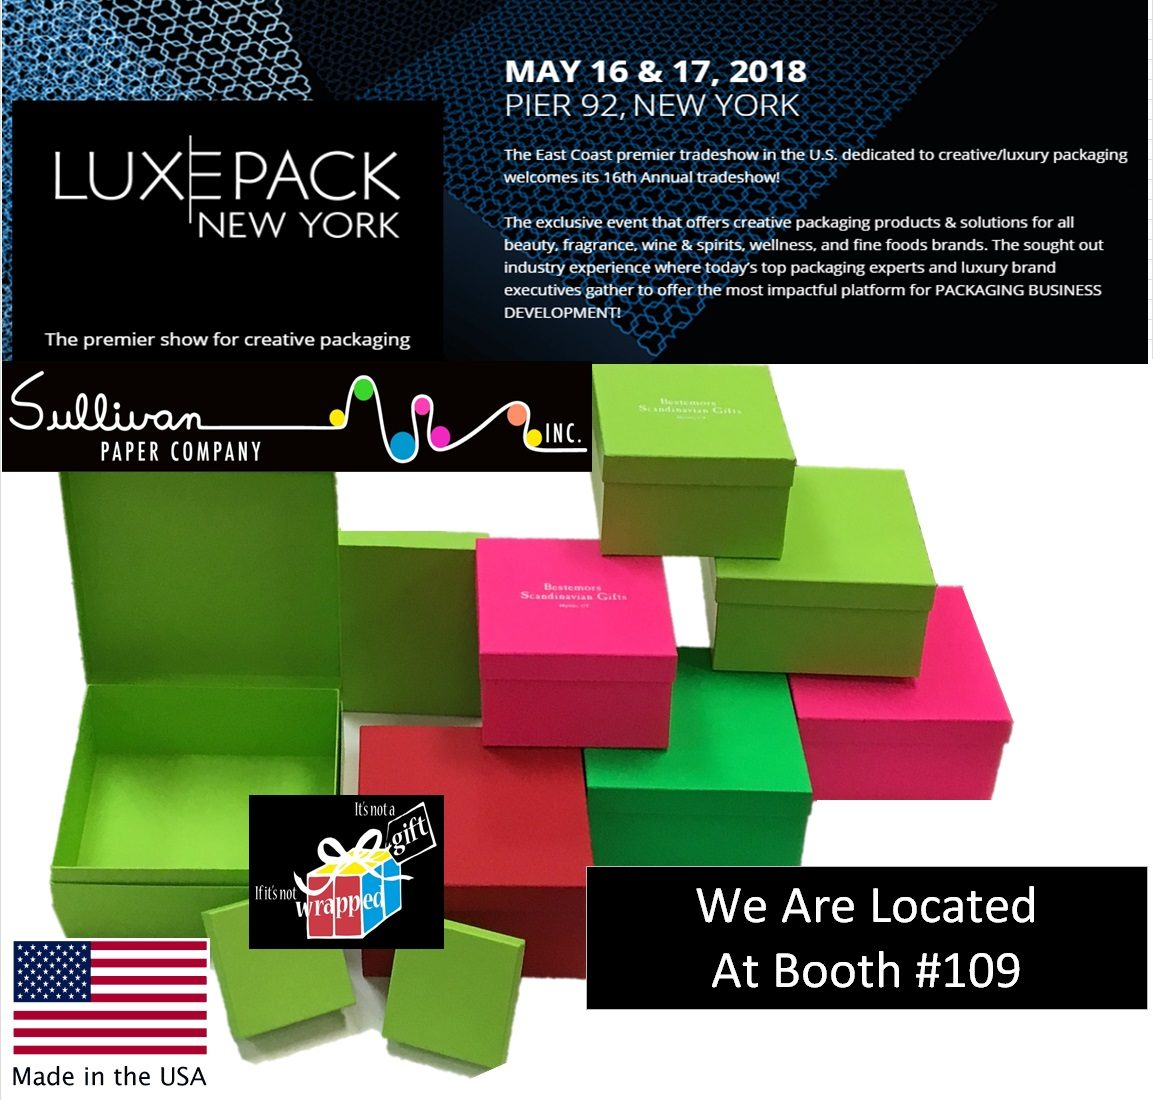 Luxe Pack Show May 16 & 17, 2018 Booth #109 — Sullivan Paper Company